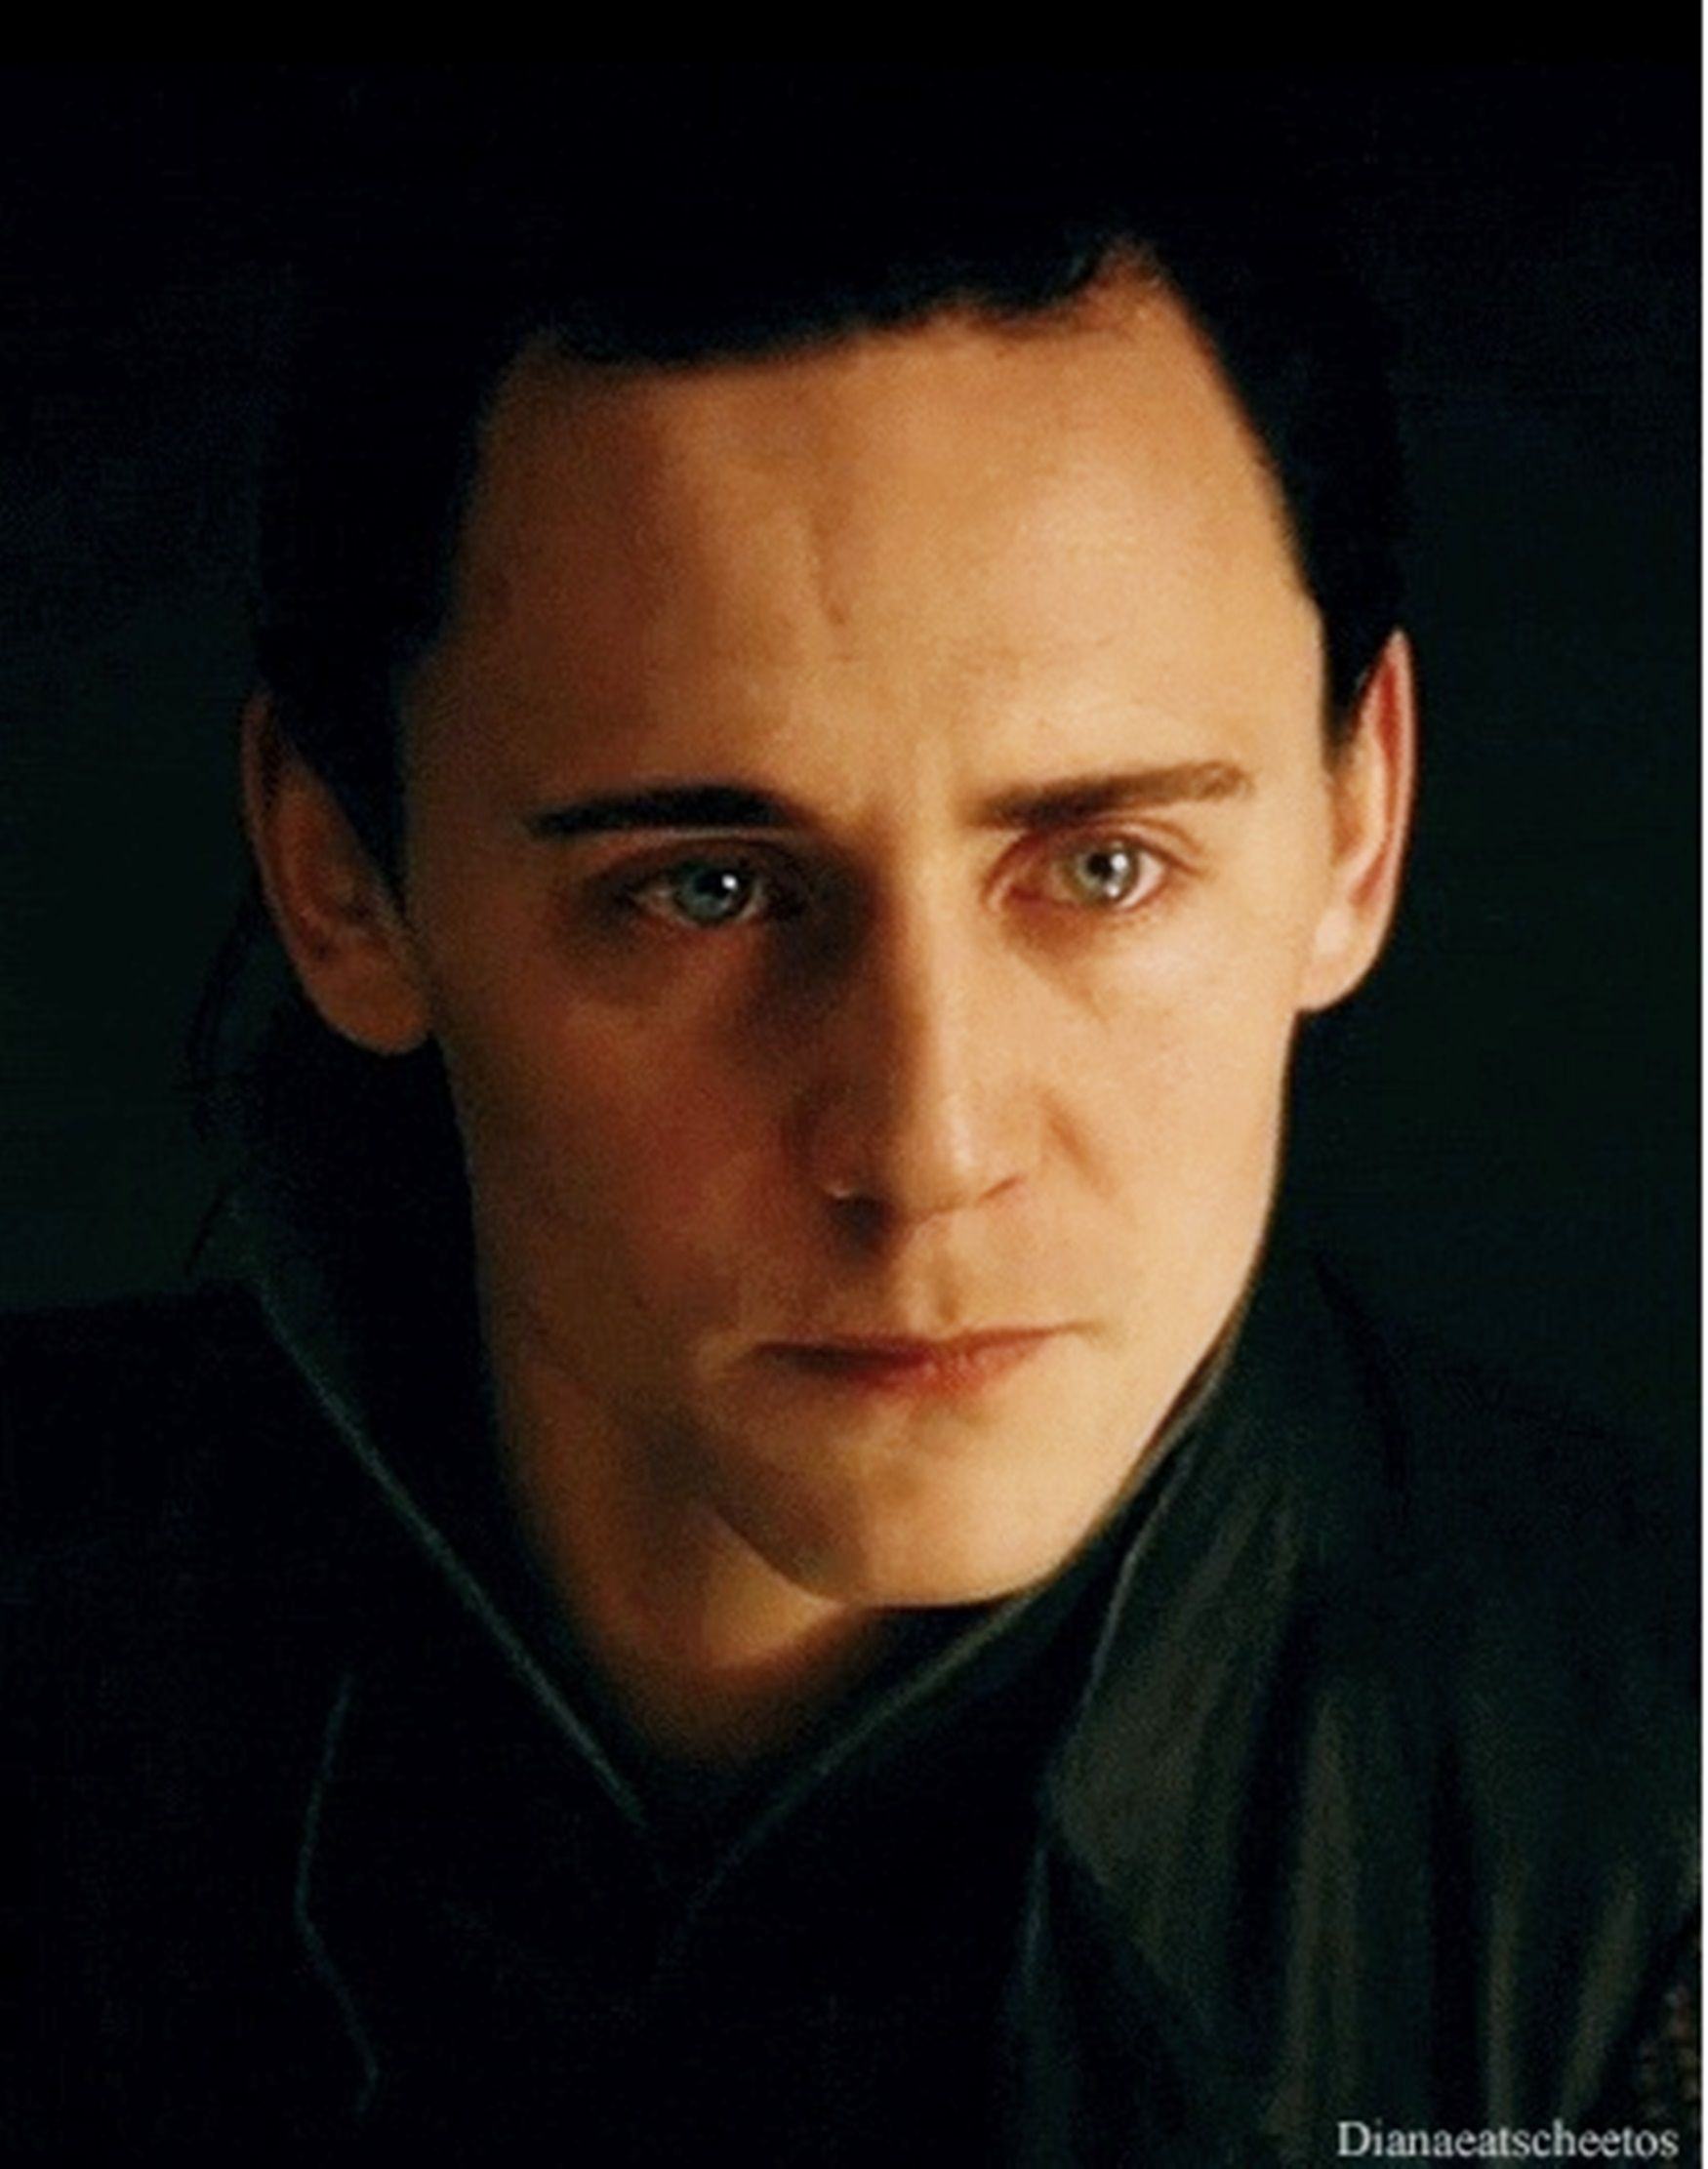 Tom Hiddleston in one of my favorite Loki images! We can ...